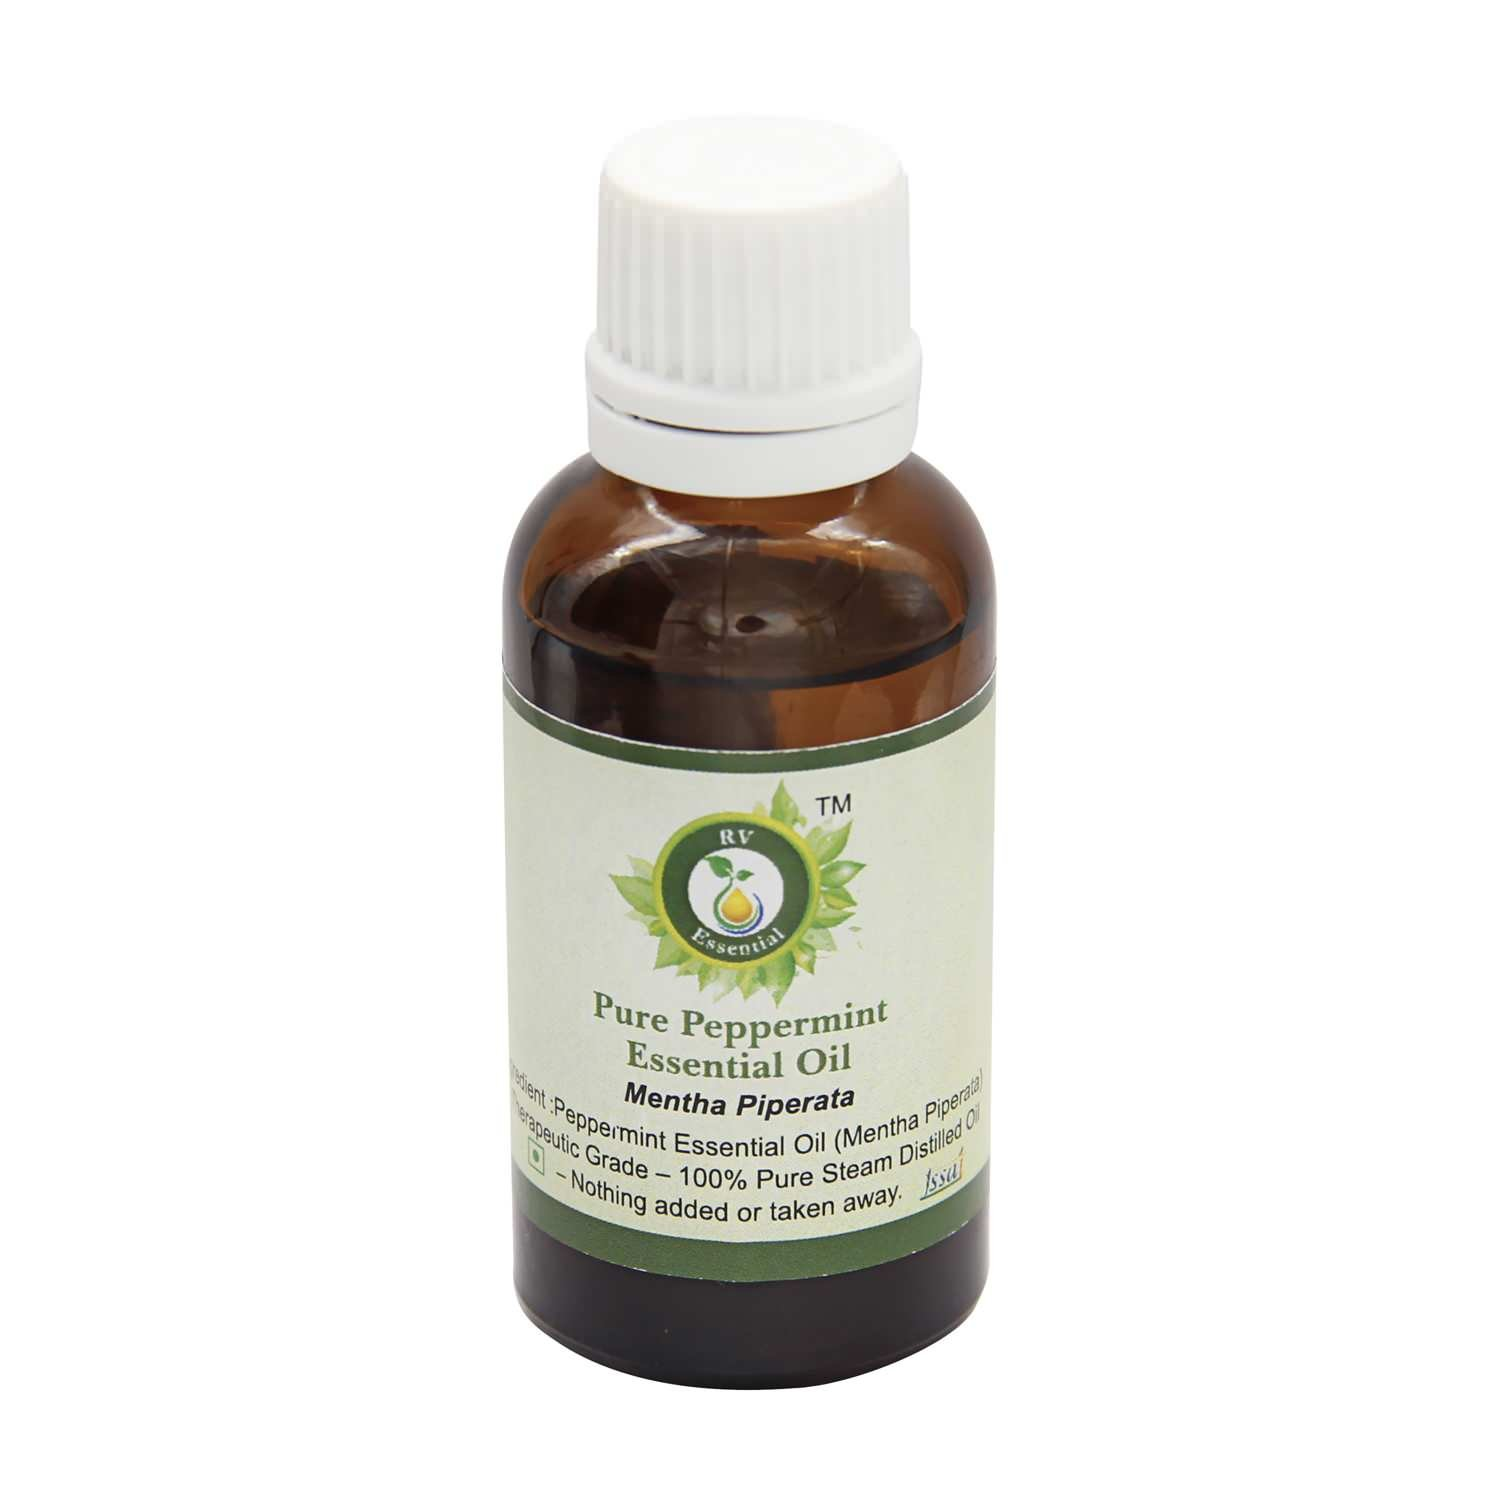 Peppermint Essential Oil | Mentha Piperata | Peppermint Oil | For Hair | Pure Peppermint Oil | Undiluted | 100% Pure Natural | Steam Distilled | Therapeutic Grade | 300ml | 10oz By R V Essential